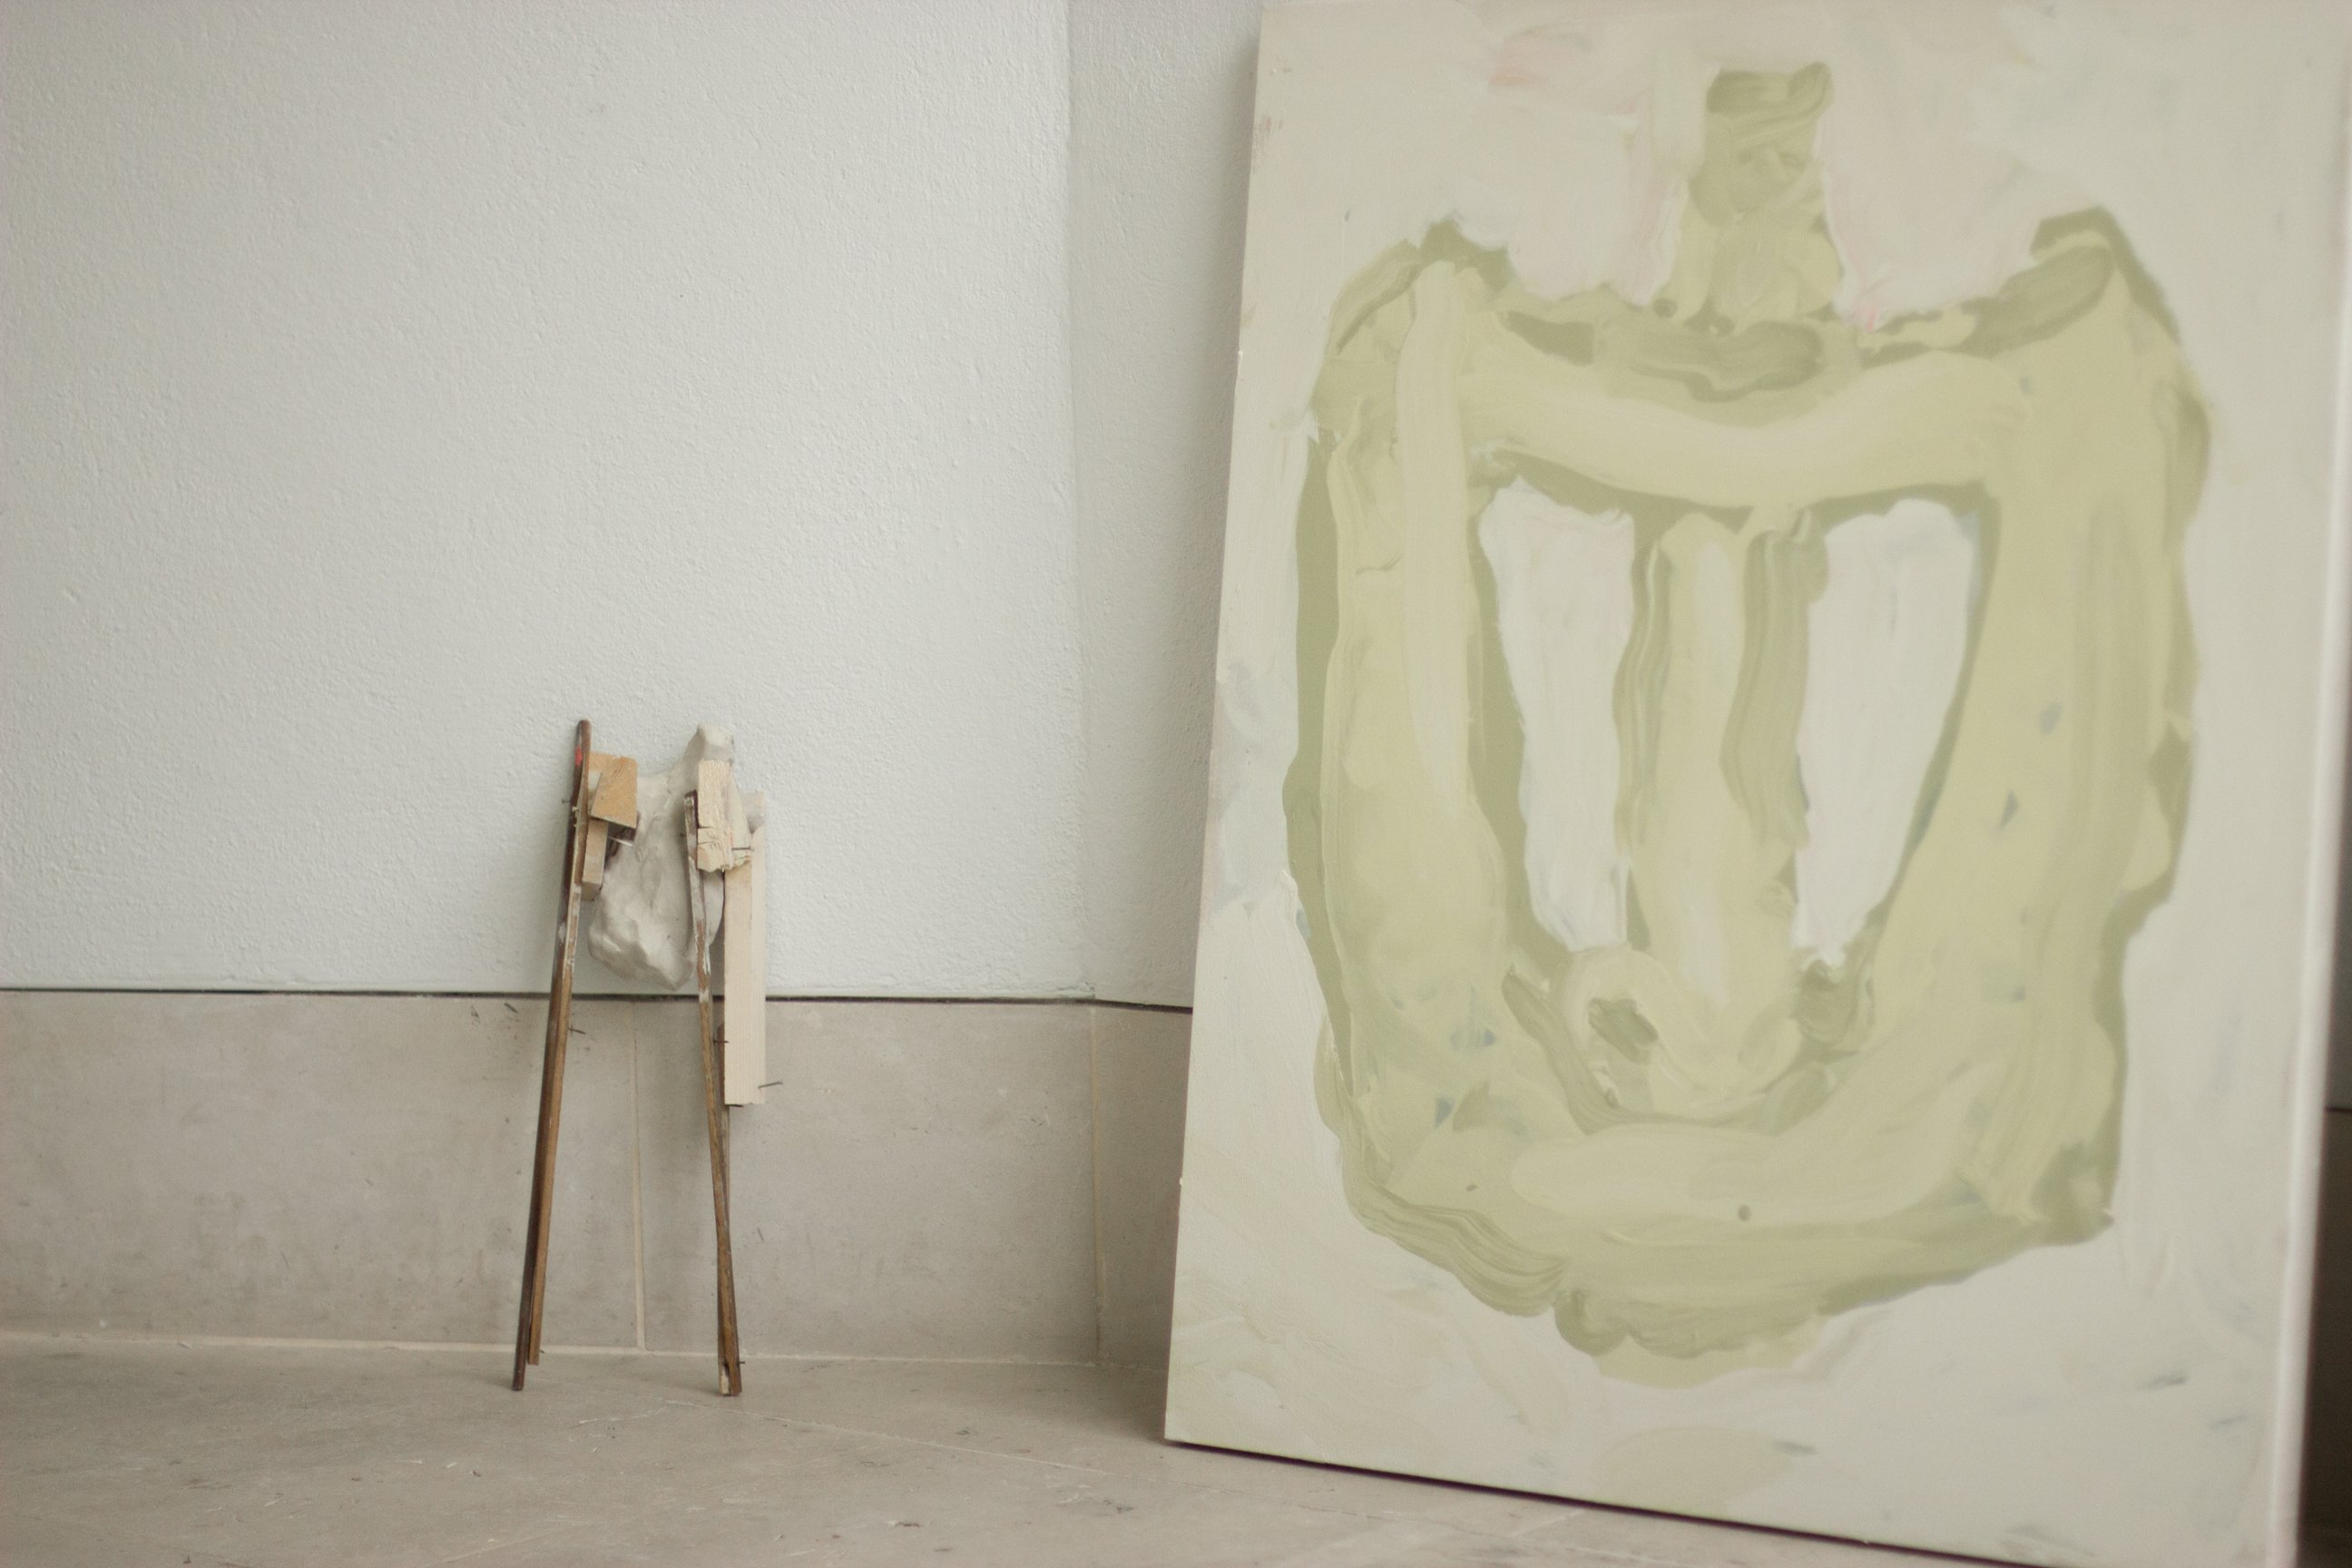 A small sculpture of clay and wood on a tile floor leaning against the light grey wall, next to a large, light green abstract painting on a canvas.